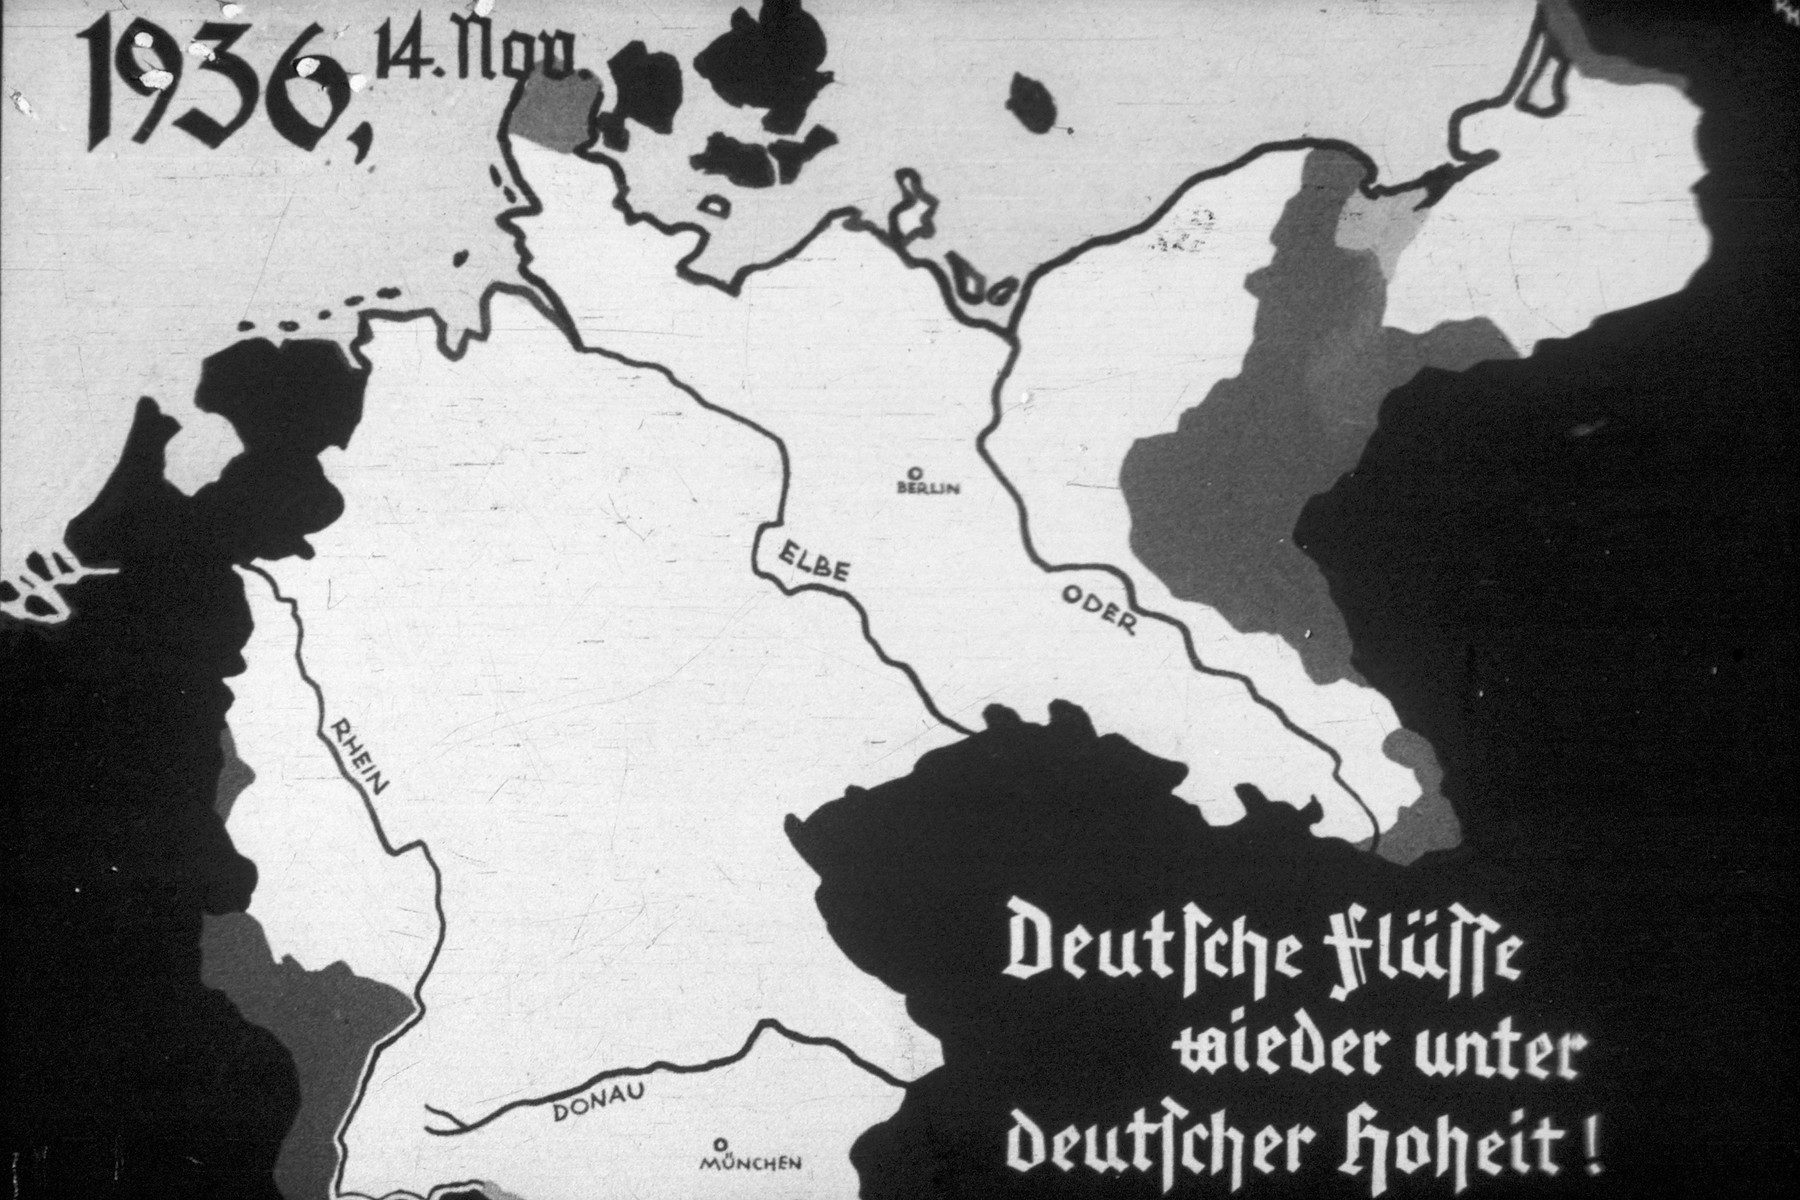 4th slide from a Hitler Youth slideshow about the aftermath of WWI, Versailles and how it was overcome and the rise of Nazism.  The slide shows the borders of Germany after November, 1936.